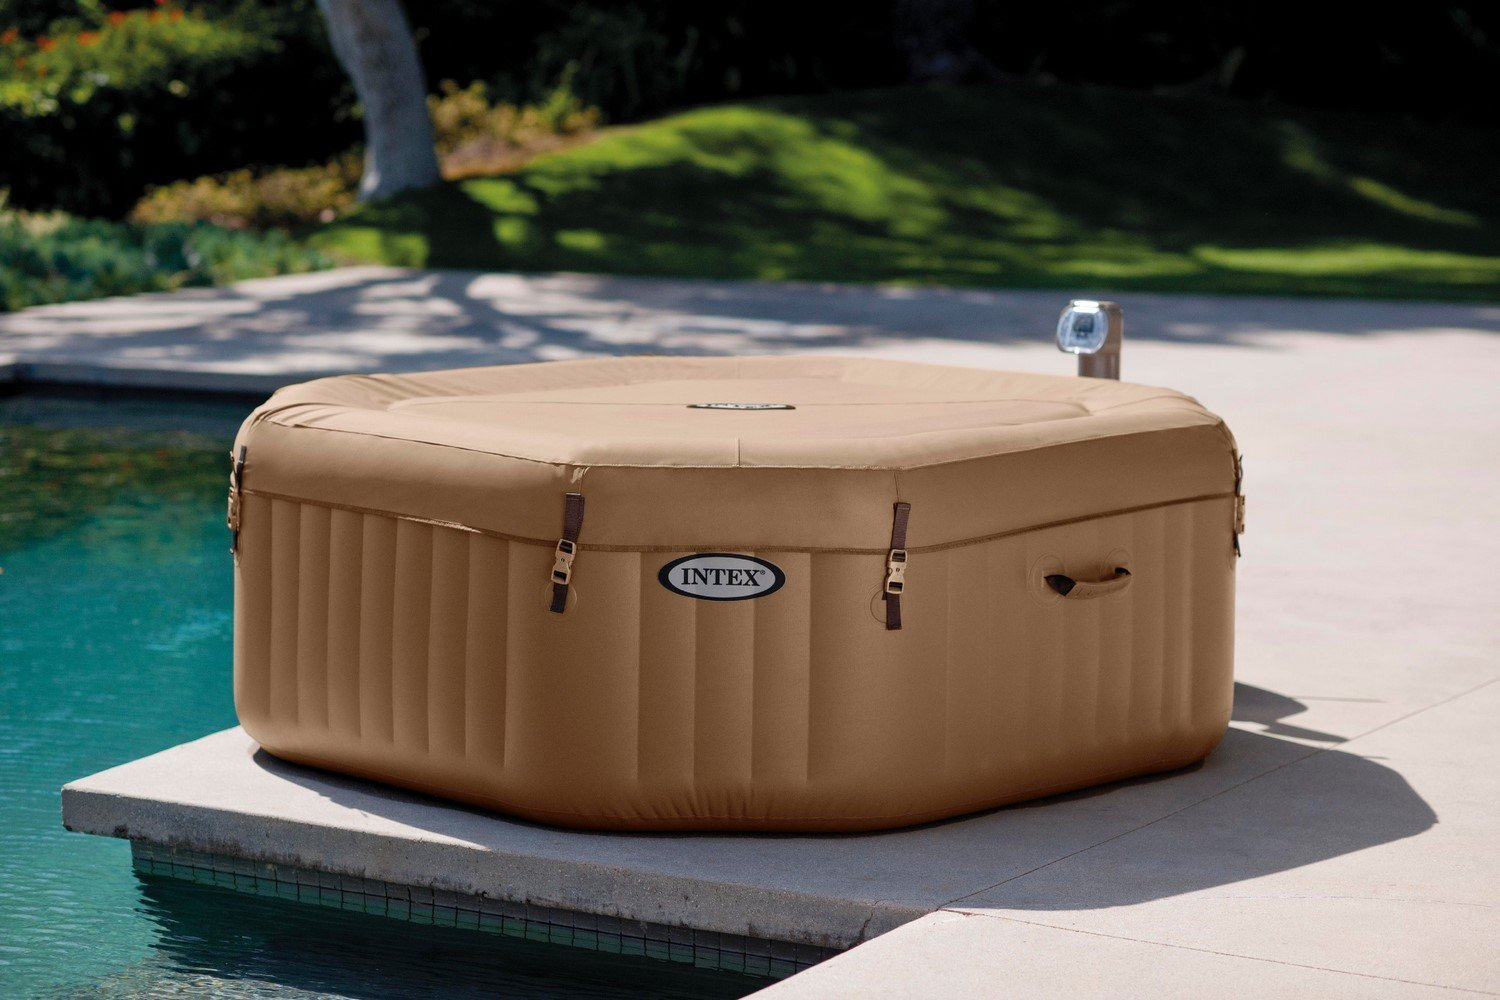 Portable Hot Tubs Hot Tubs Spas The Home Depot Share The